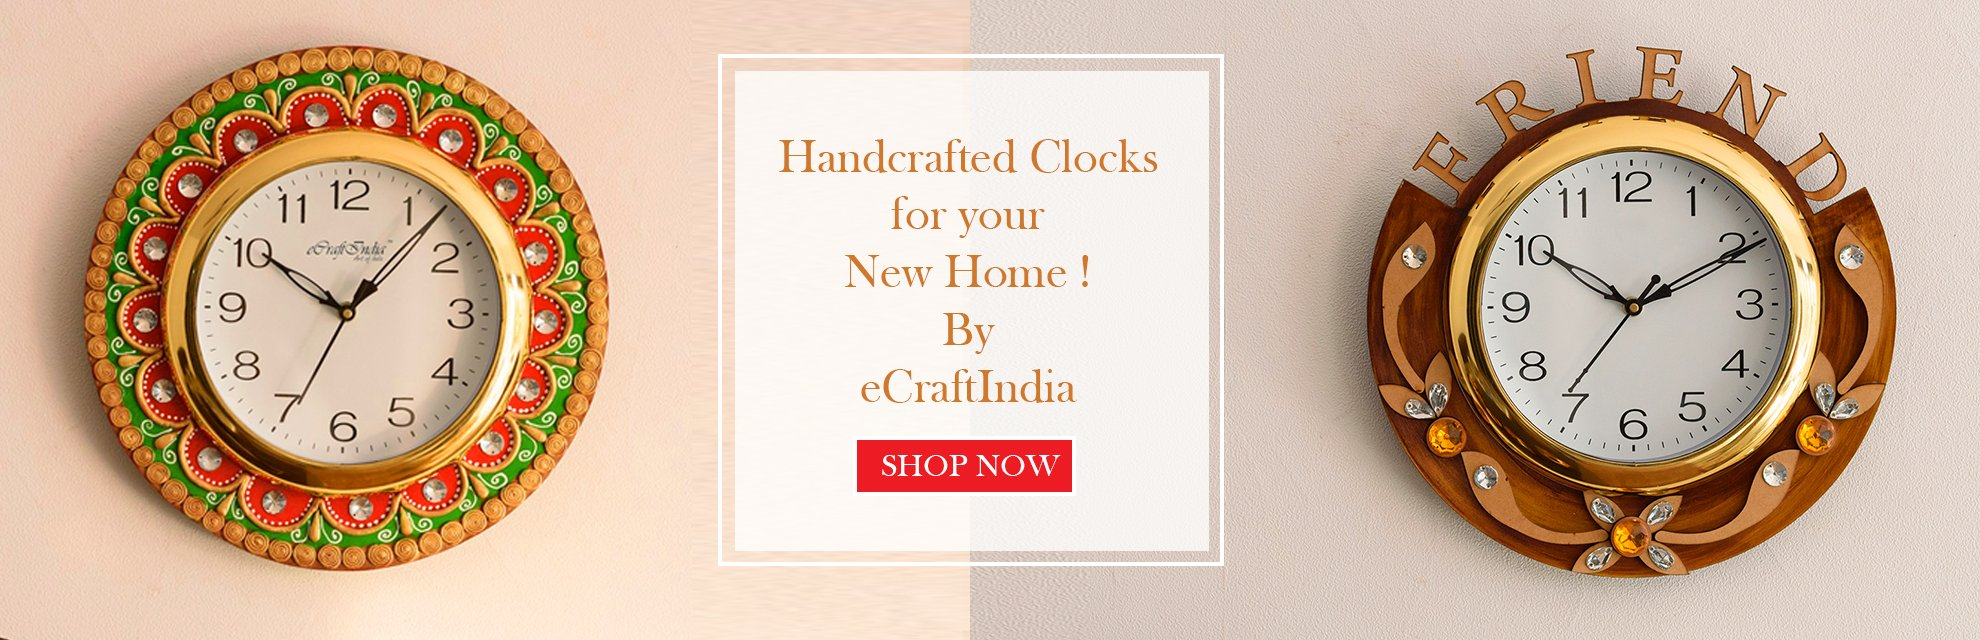 eCraftIndia Handcrafted Wall Clocks